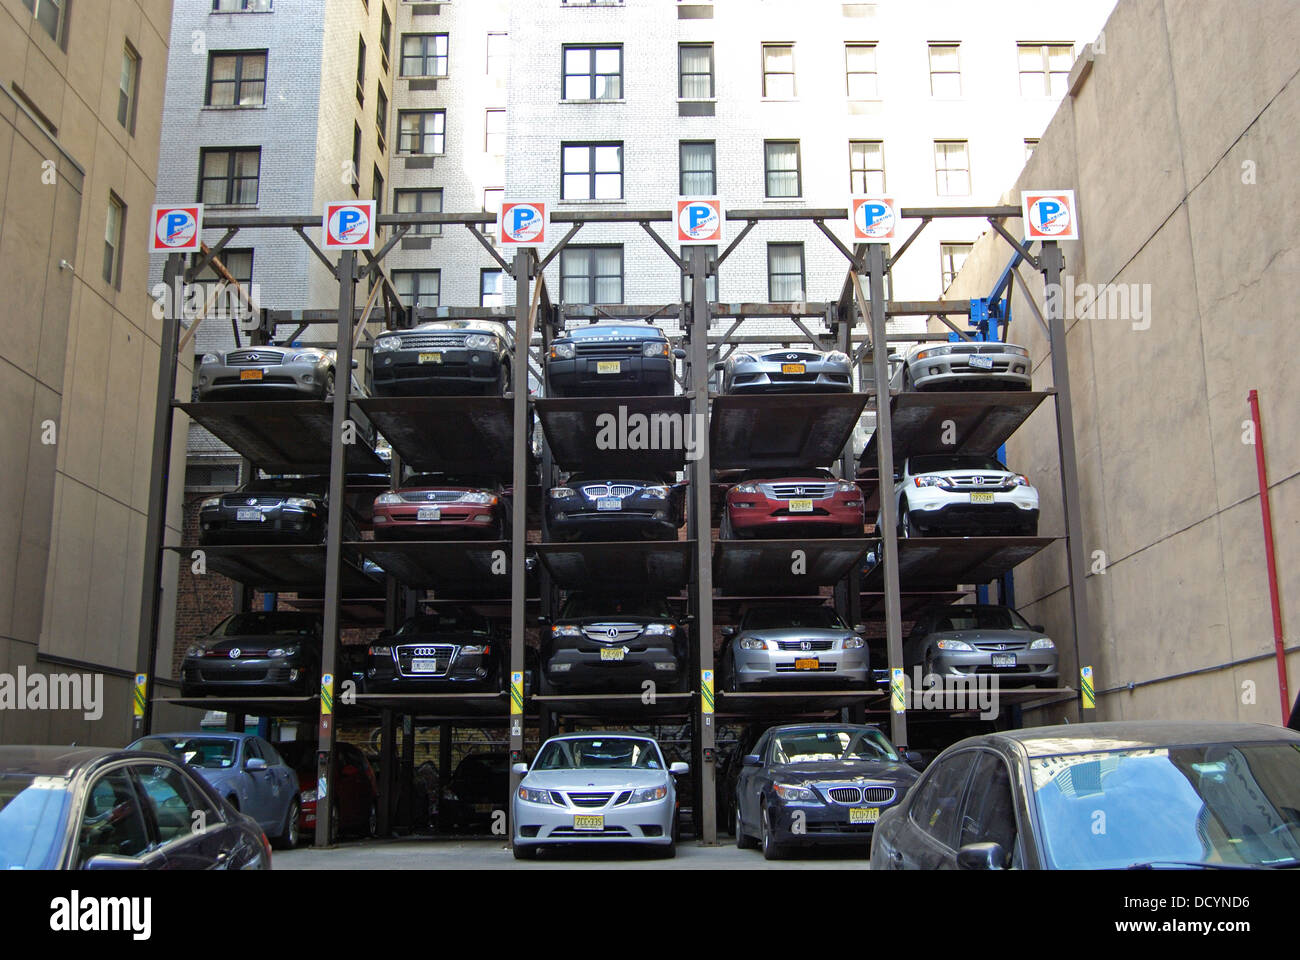 unusual car park stacking system manhattan new york united states stock photo 59616514 alamy. Black Bedroom Furniture Sets. Home Design Ideas